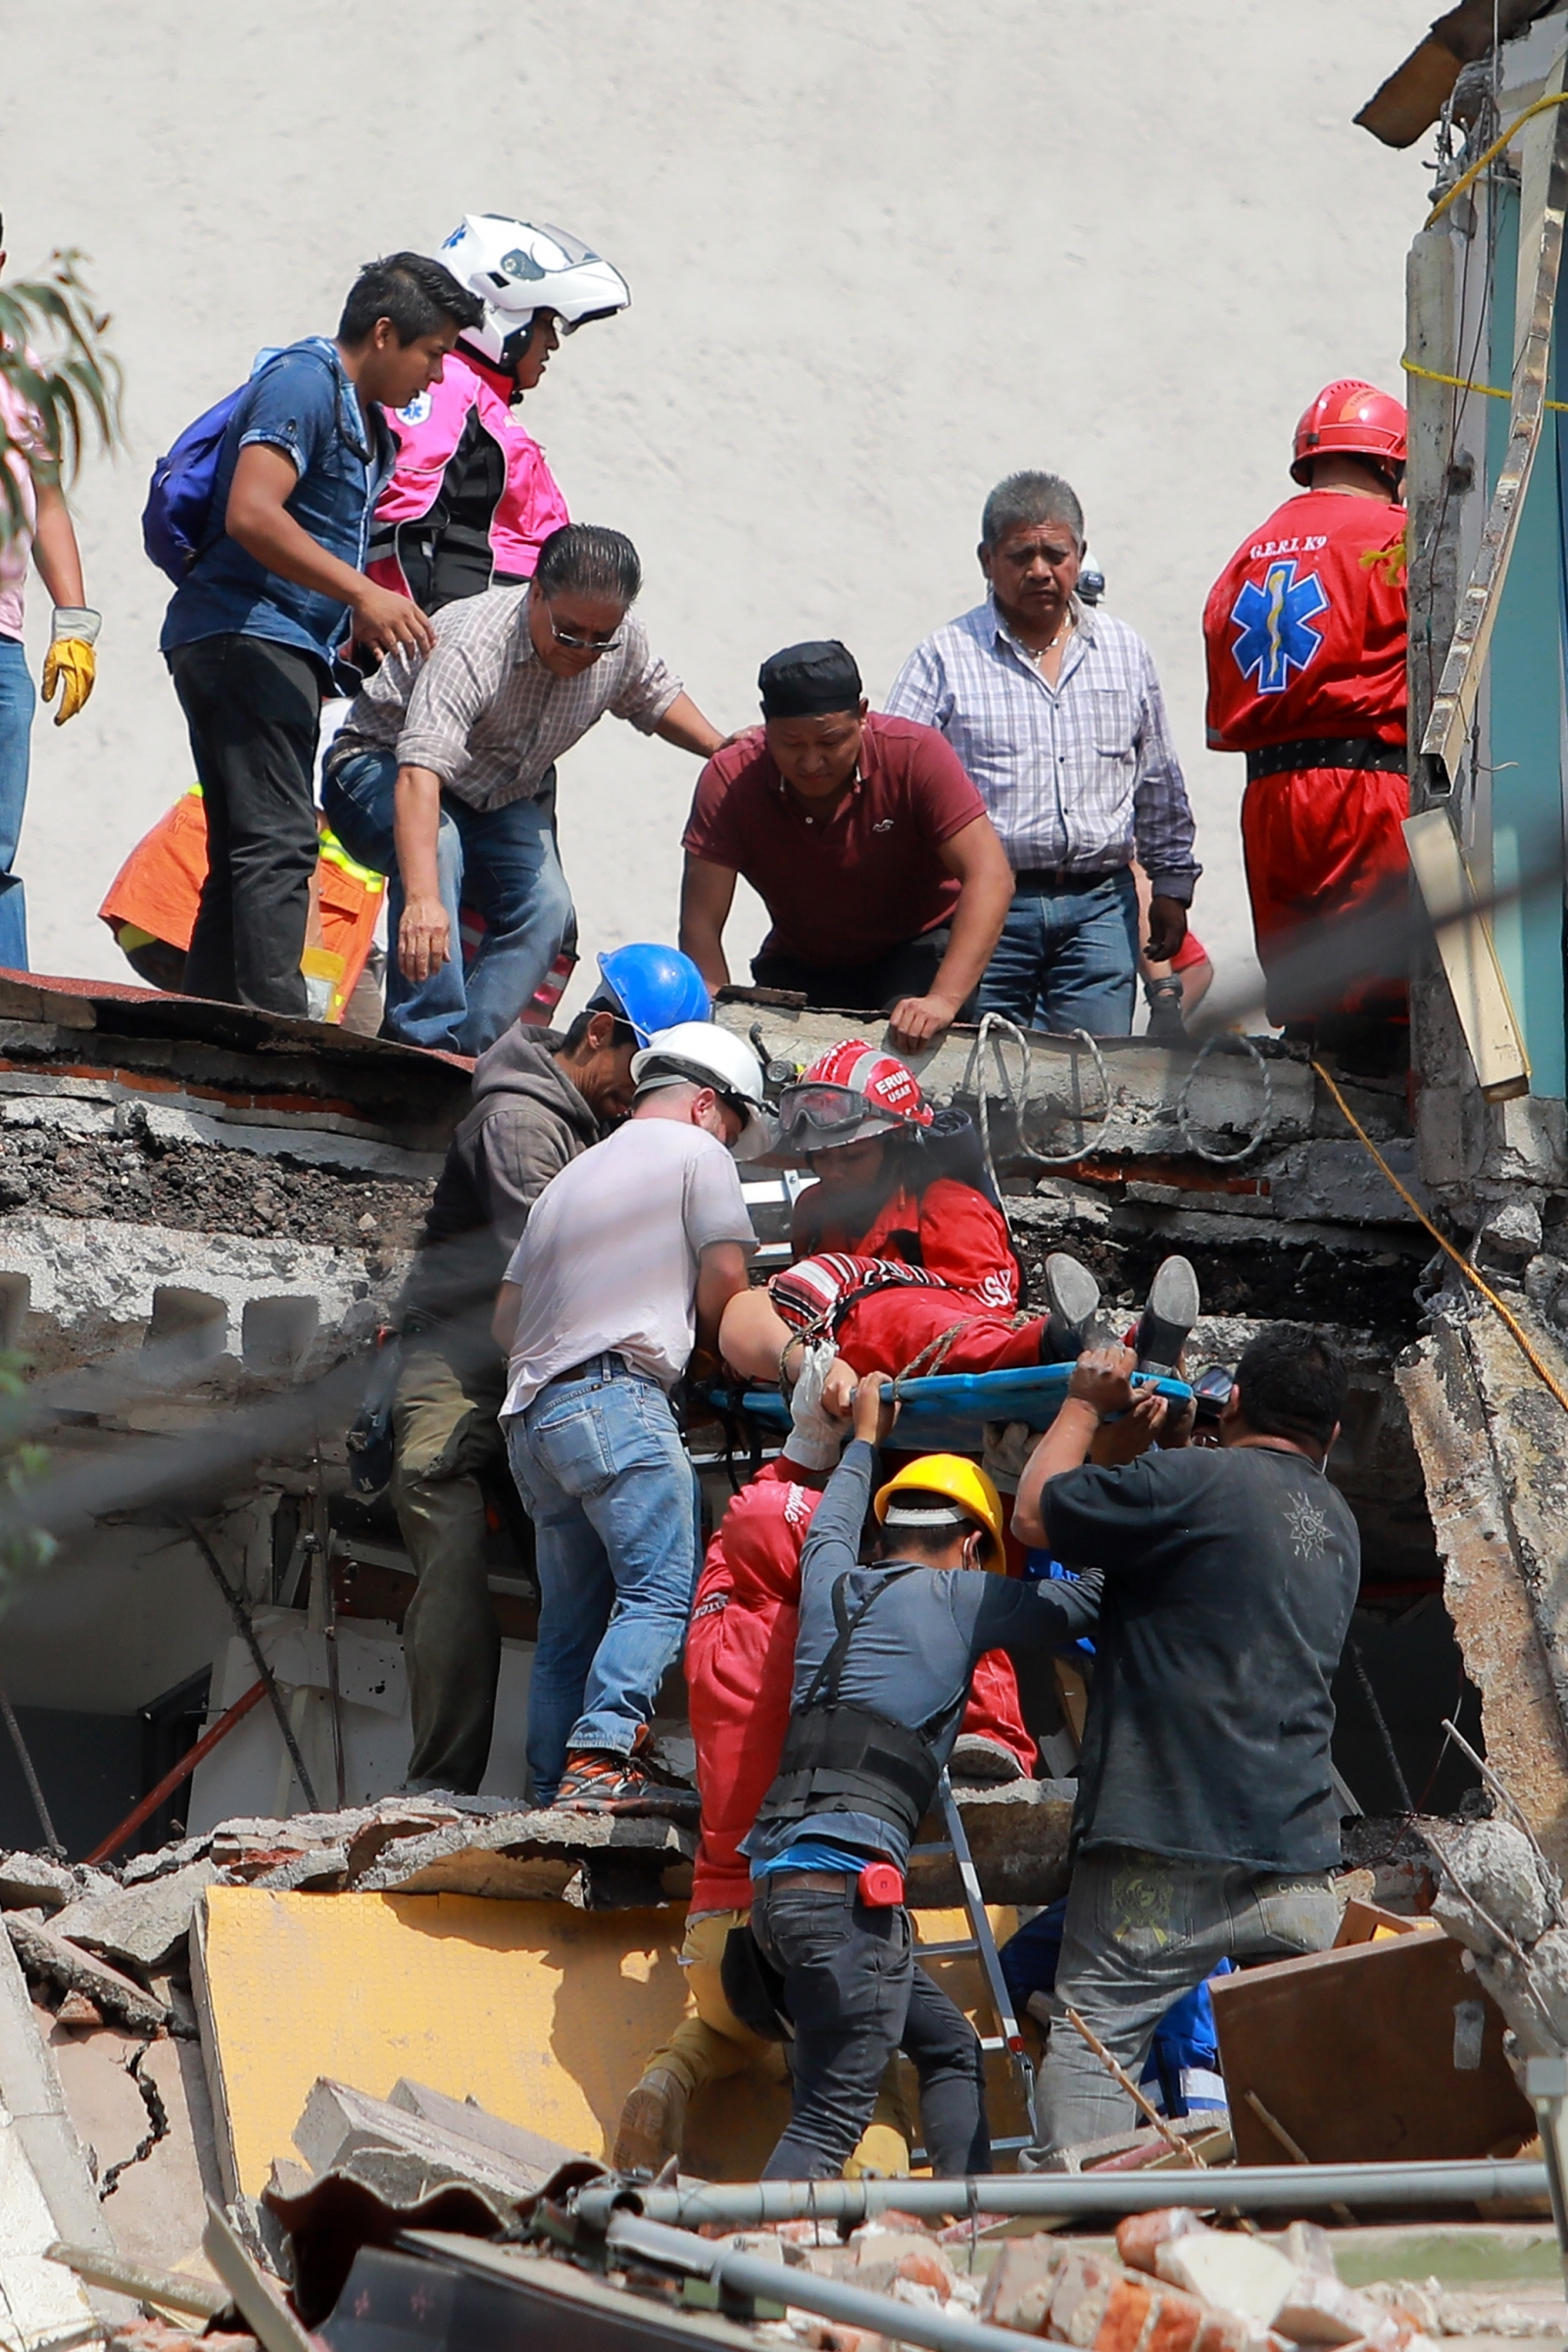 Criminals Taking Advantage Of Mexico City Earthquake To